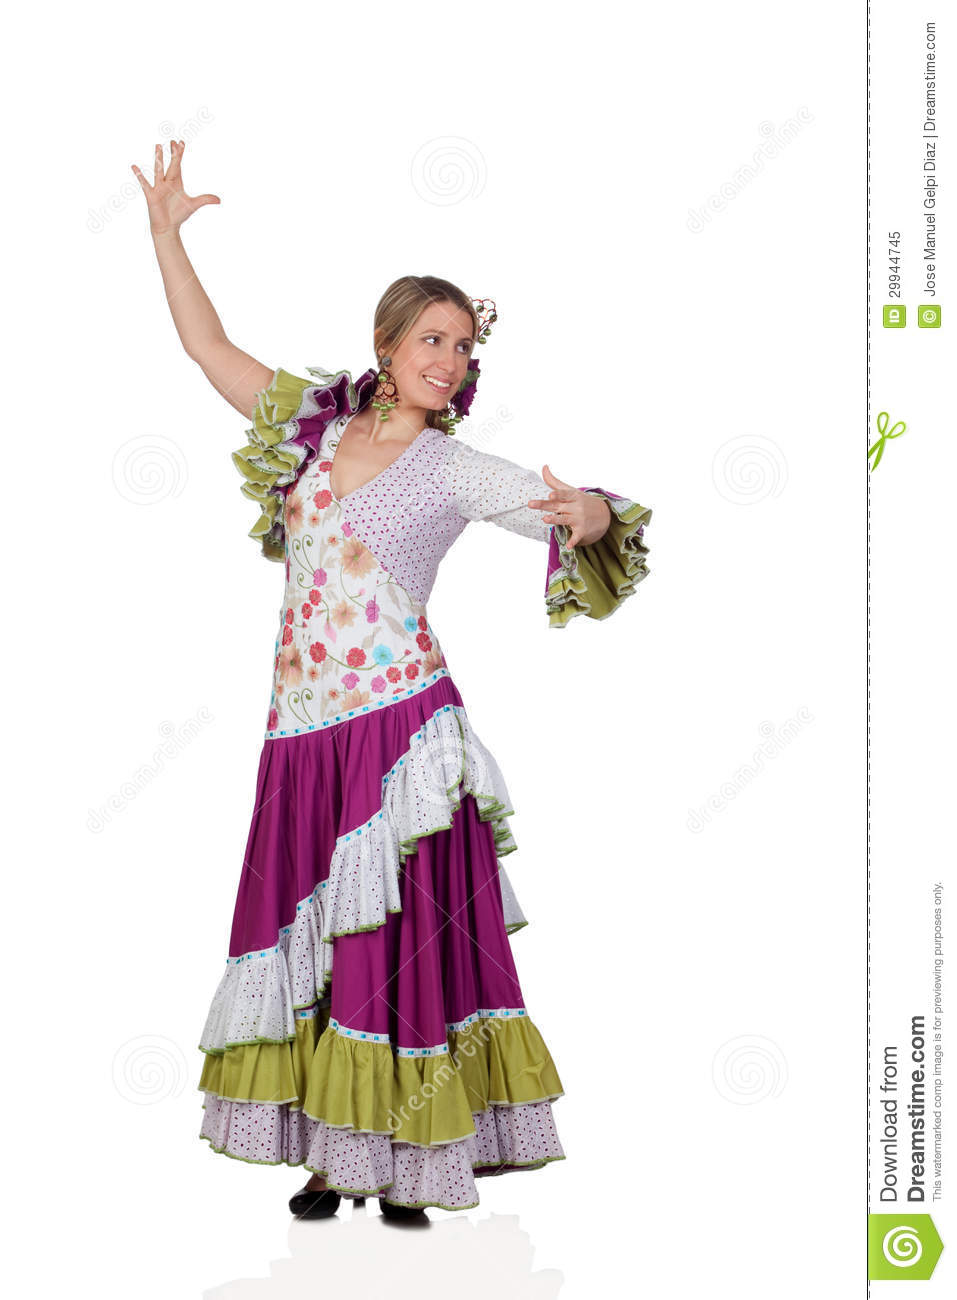 hispanic singles in andalusia 10 best places to visit in spain  festivals and buzzing nightlife all make seville one of the best places to visit in spain as the capital city of andalusia,.